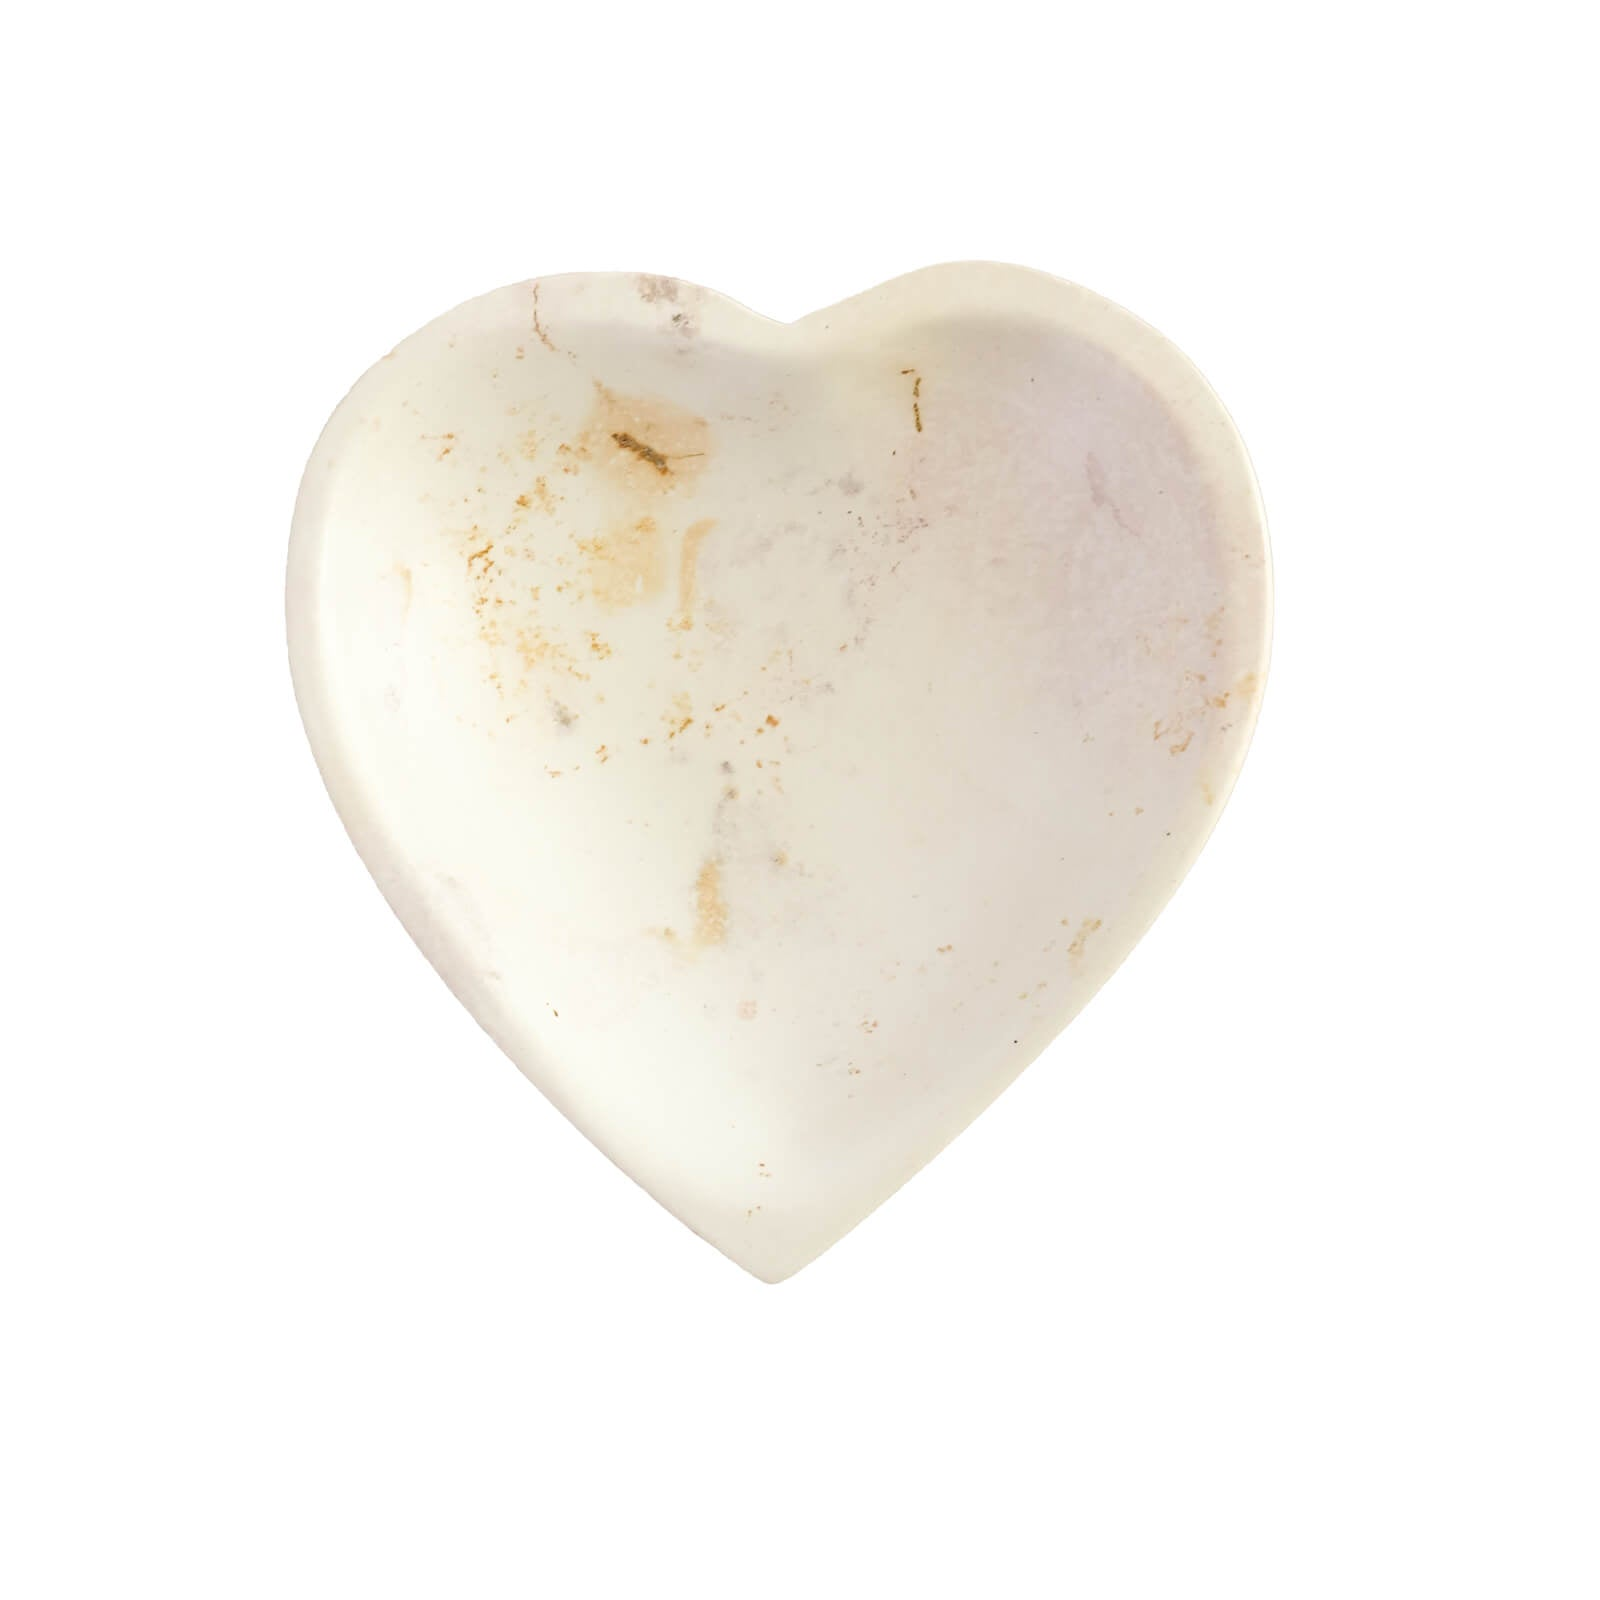 Small Soapstone Heart Bowl